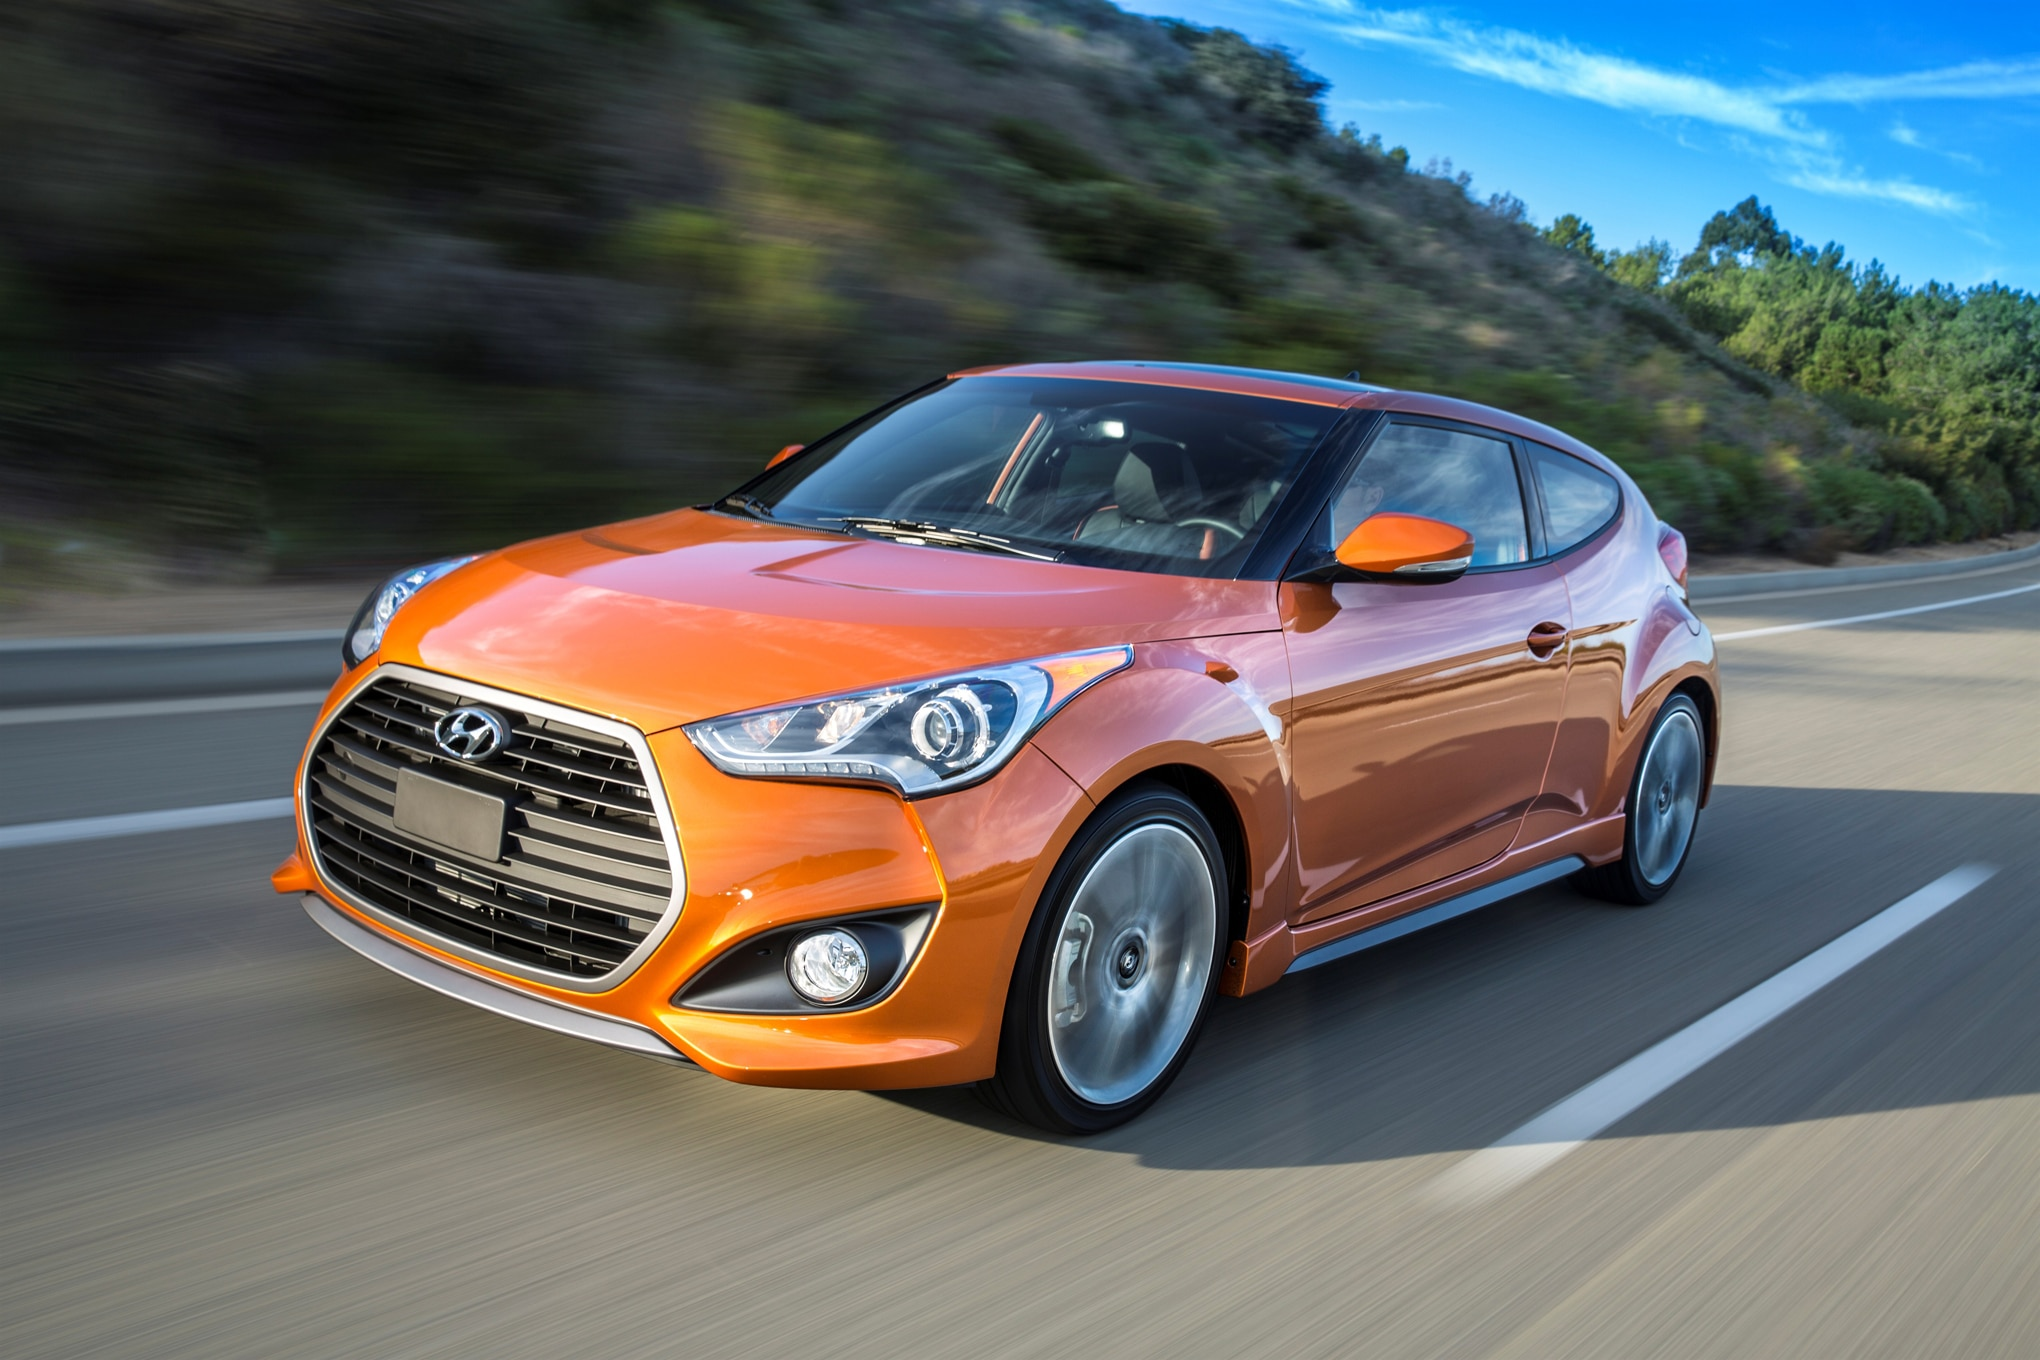 2016 hyundai veloster turbo rally edition review. Black Bedroom Furniture Sets. Home Design Ideas